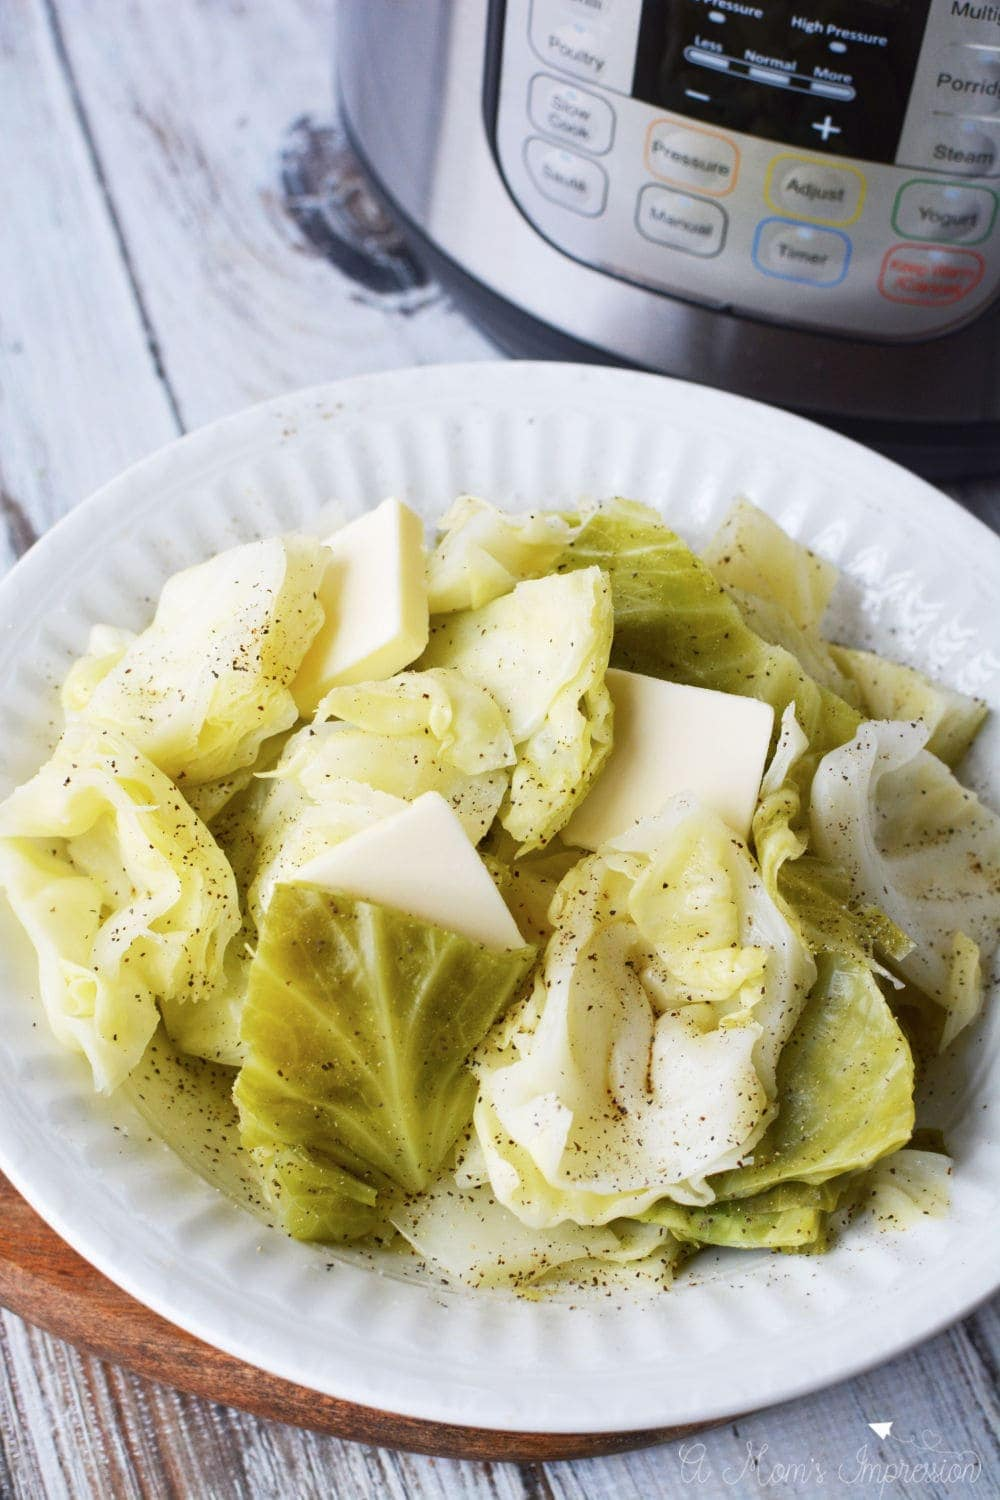 This Instant Pot Cabbage recipe is the perfect side dish for keto diet and whole 30